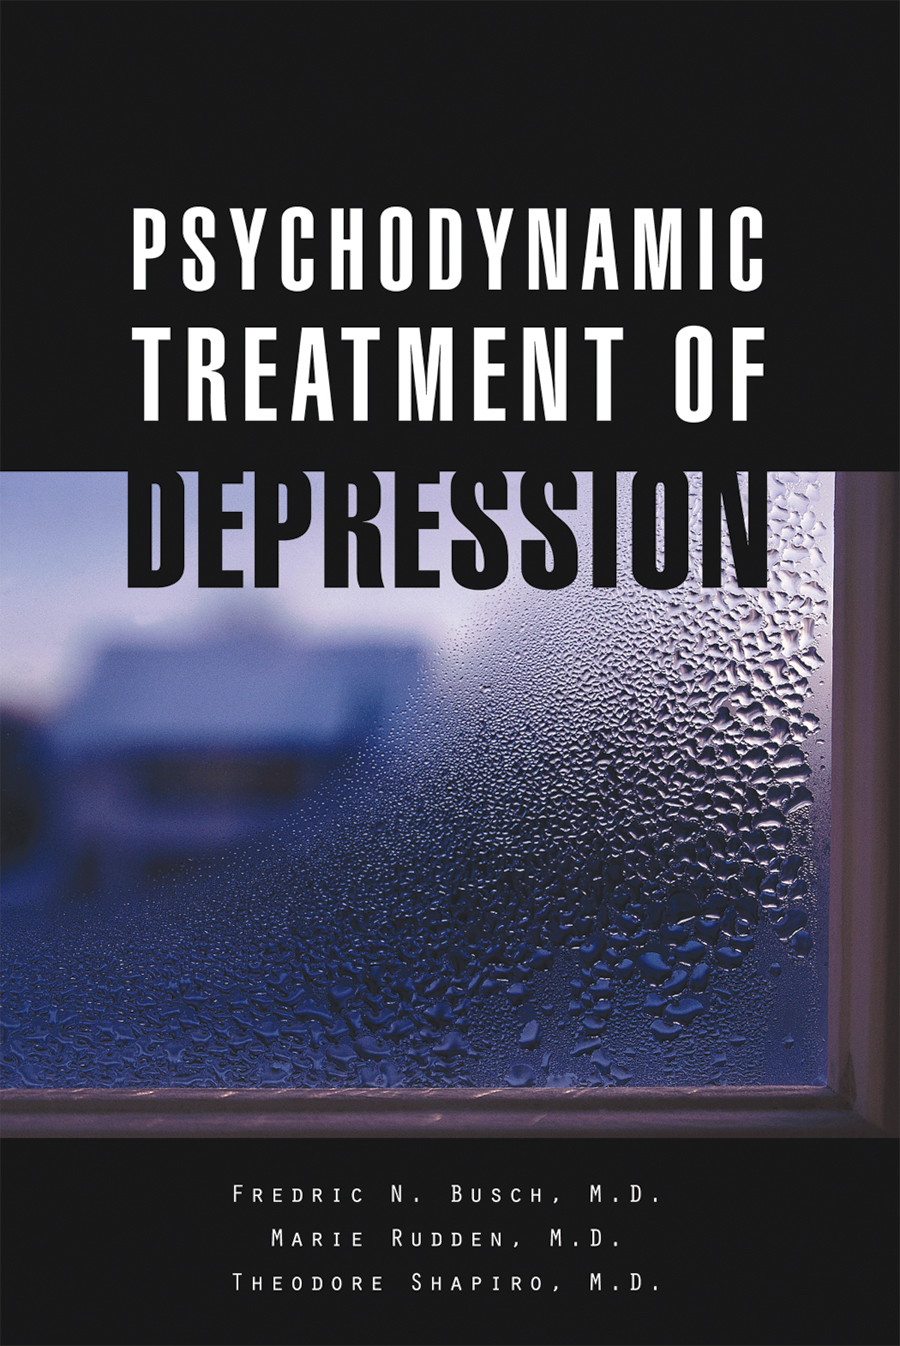 the psychodynamics of depression Evidence in support of psychodynamic psychotherapy for depression in a naturalistic setting utilizing a hybrid effectiveness/ efficacy treatment.